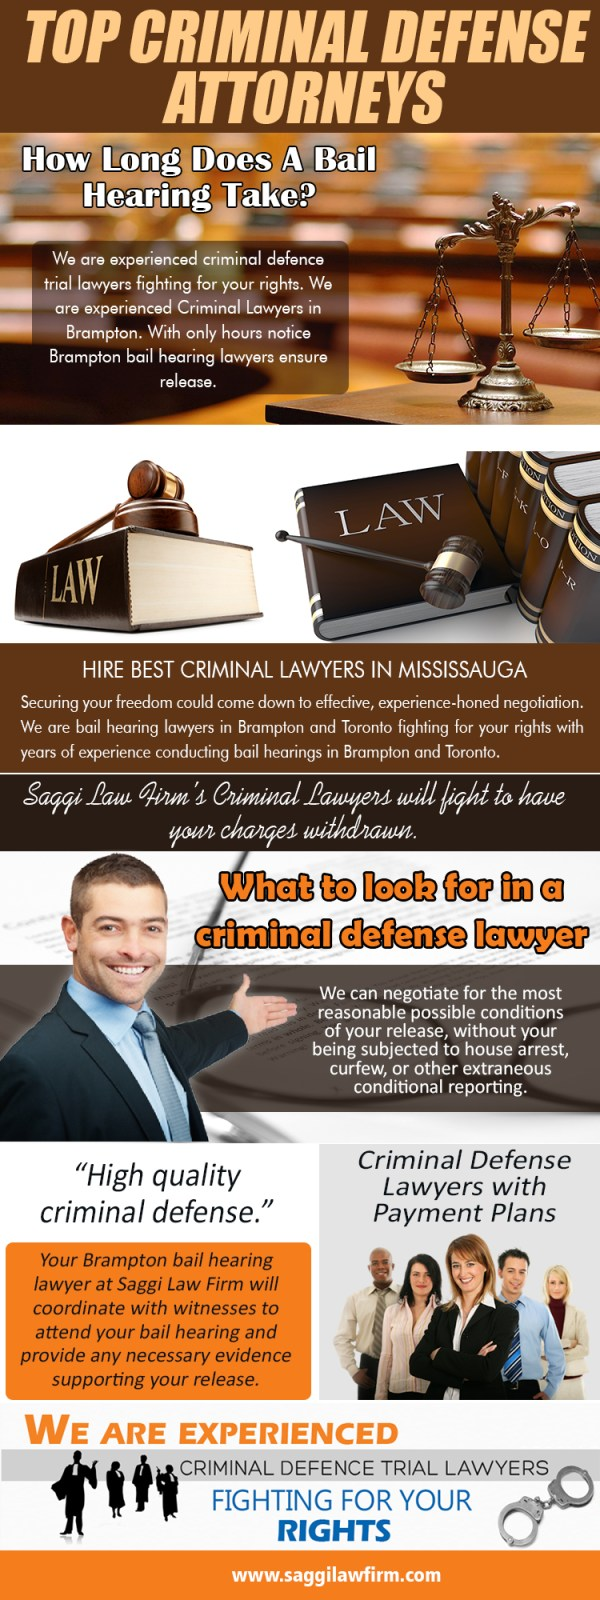 Top Criminal Defense Attorneys - Manufacturers | Manufacturers